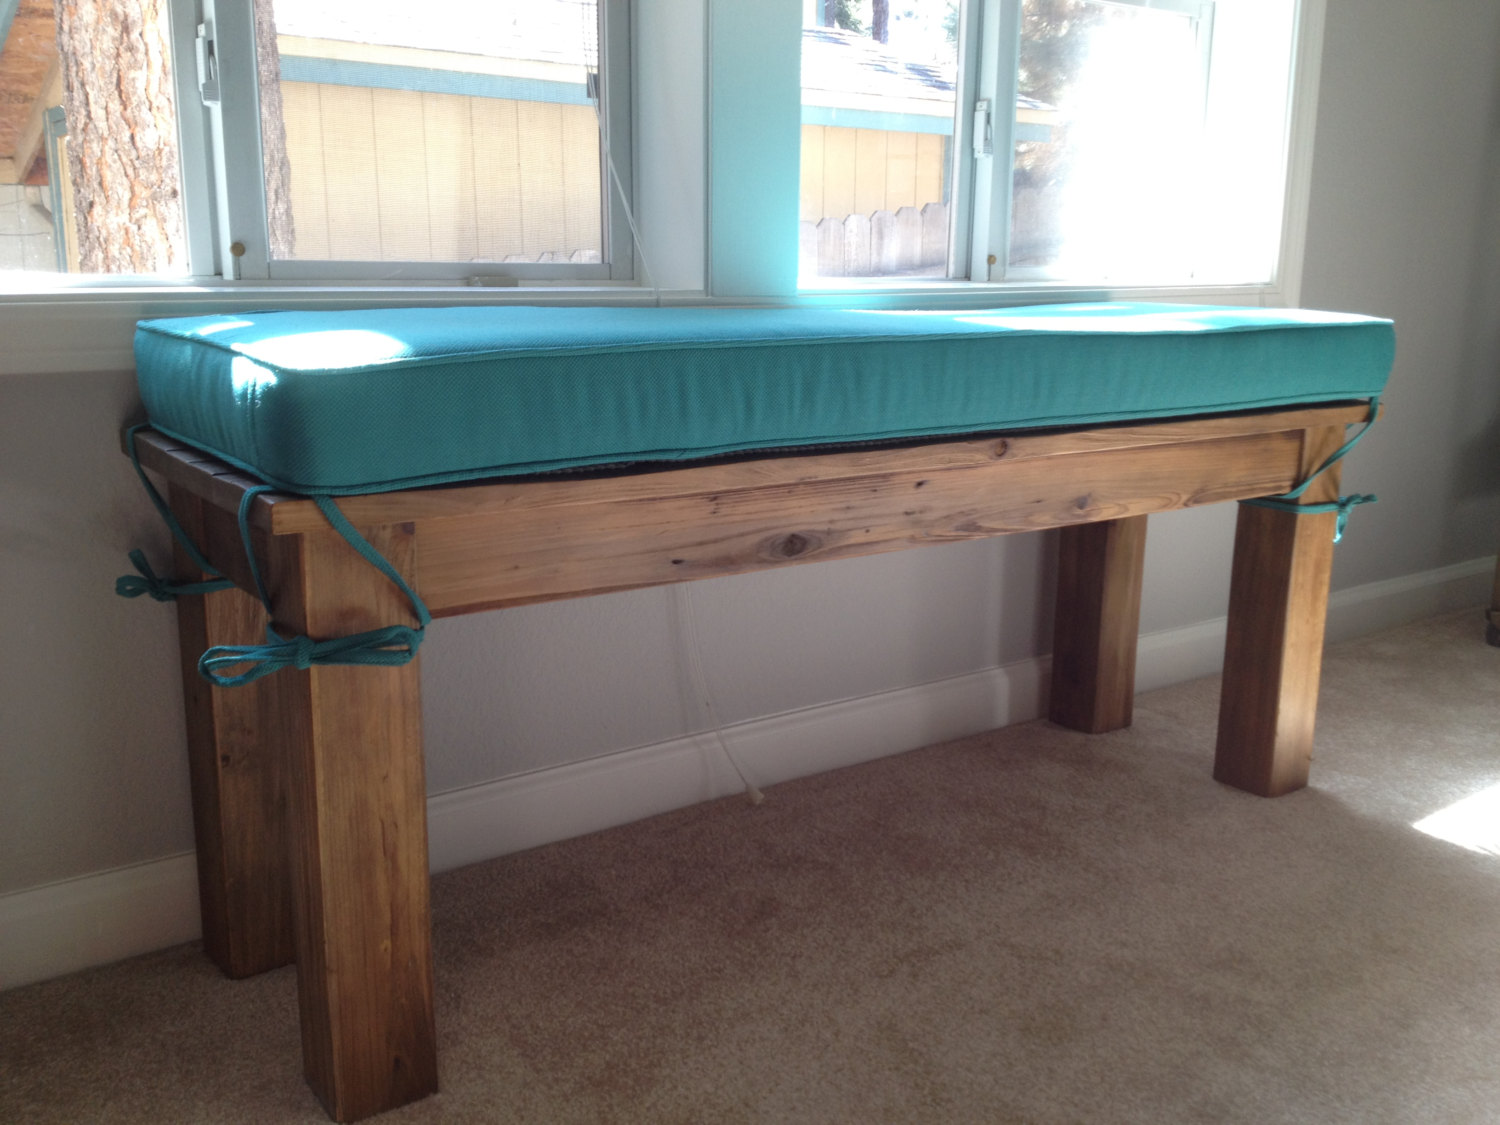 Piano Bench Cushion | Bench Seat Cushions Indoor | 3 Foot Bench Cushion